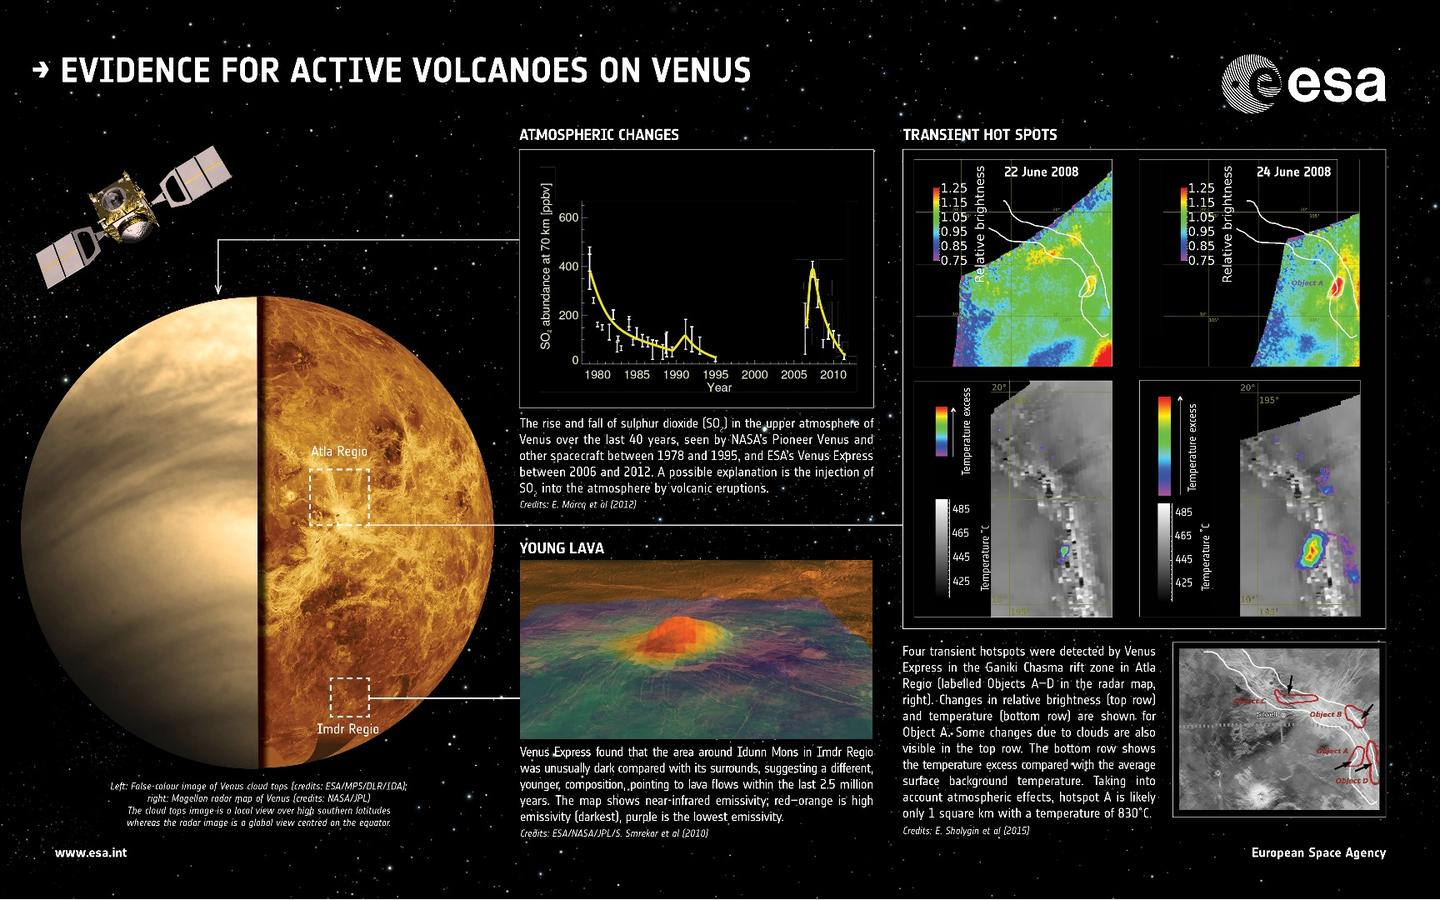 ESA infographic highlighting past and present clues to active volcanism on Venus